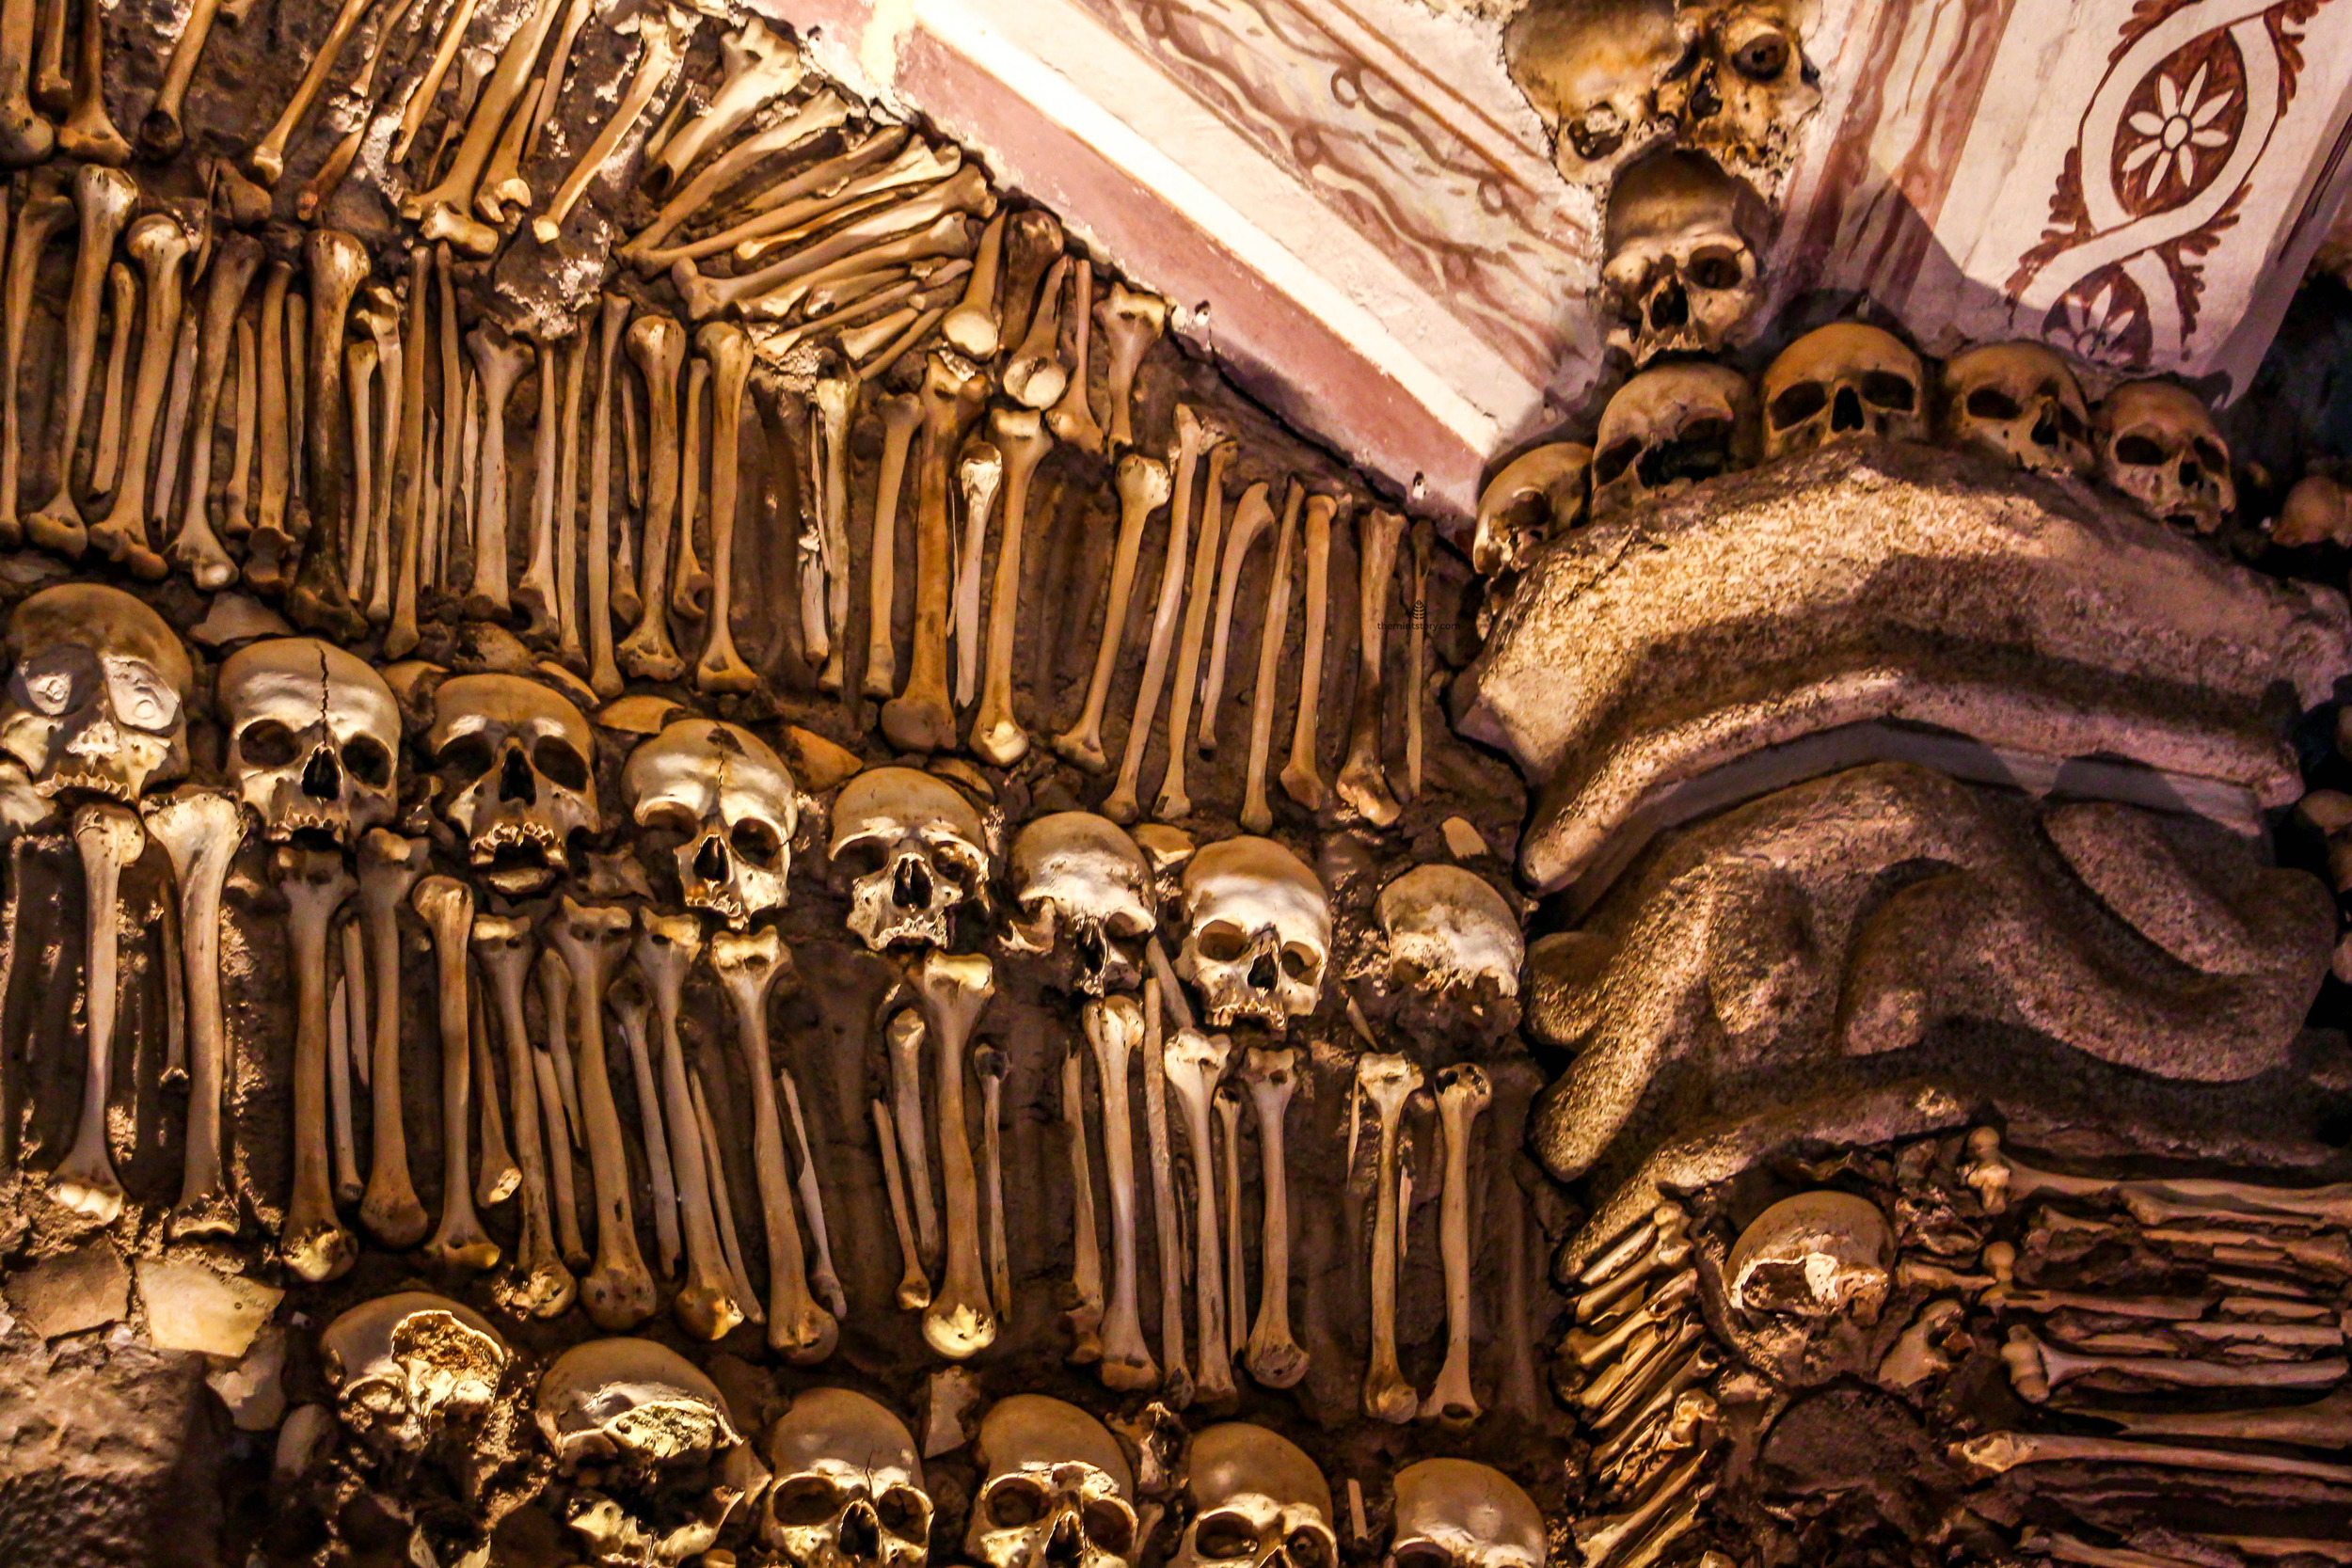 Chapel-of-bones-Evora